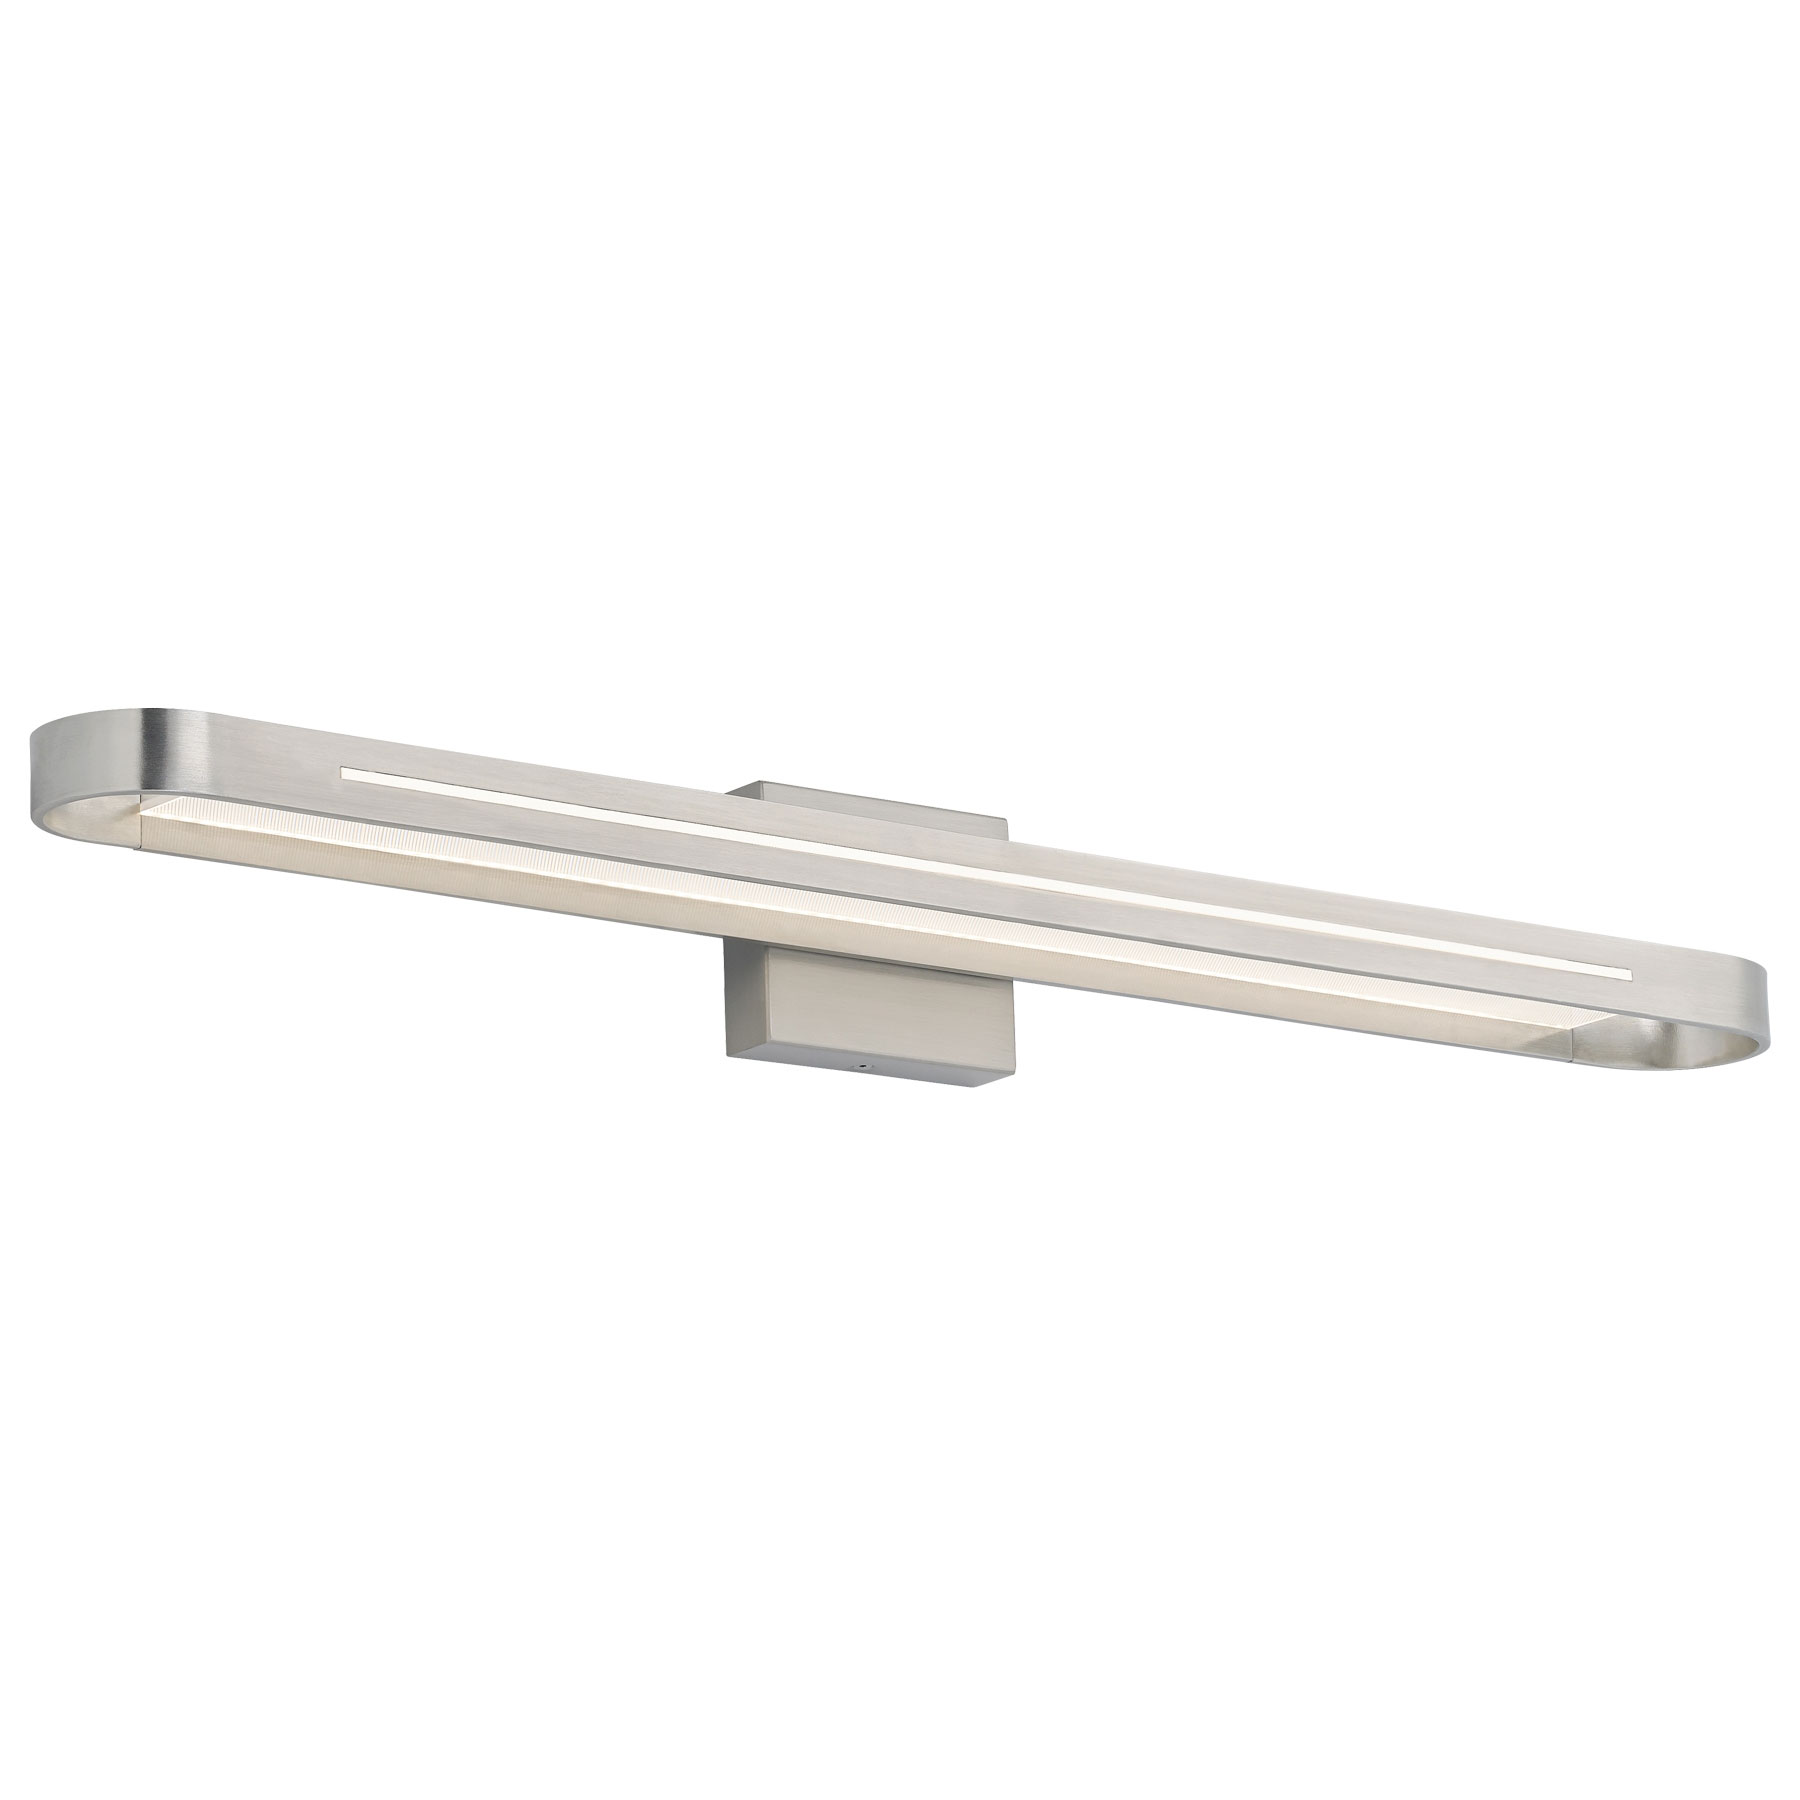 Vertura Bath Bar by LBL Lighting | BA868SCLED830